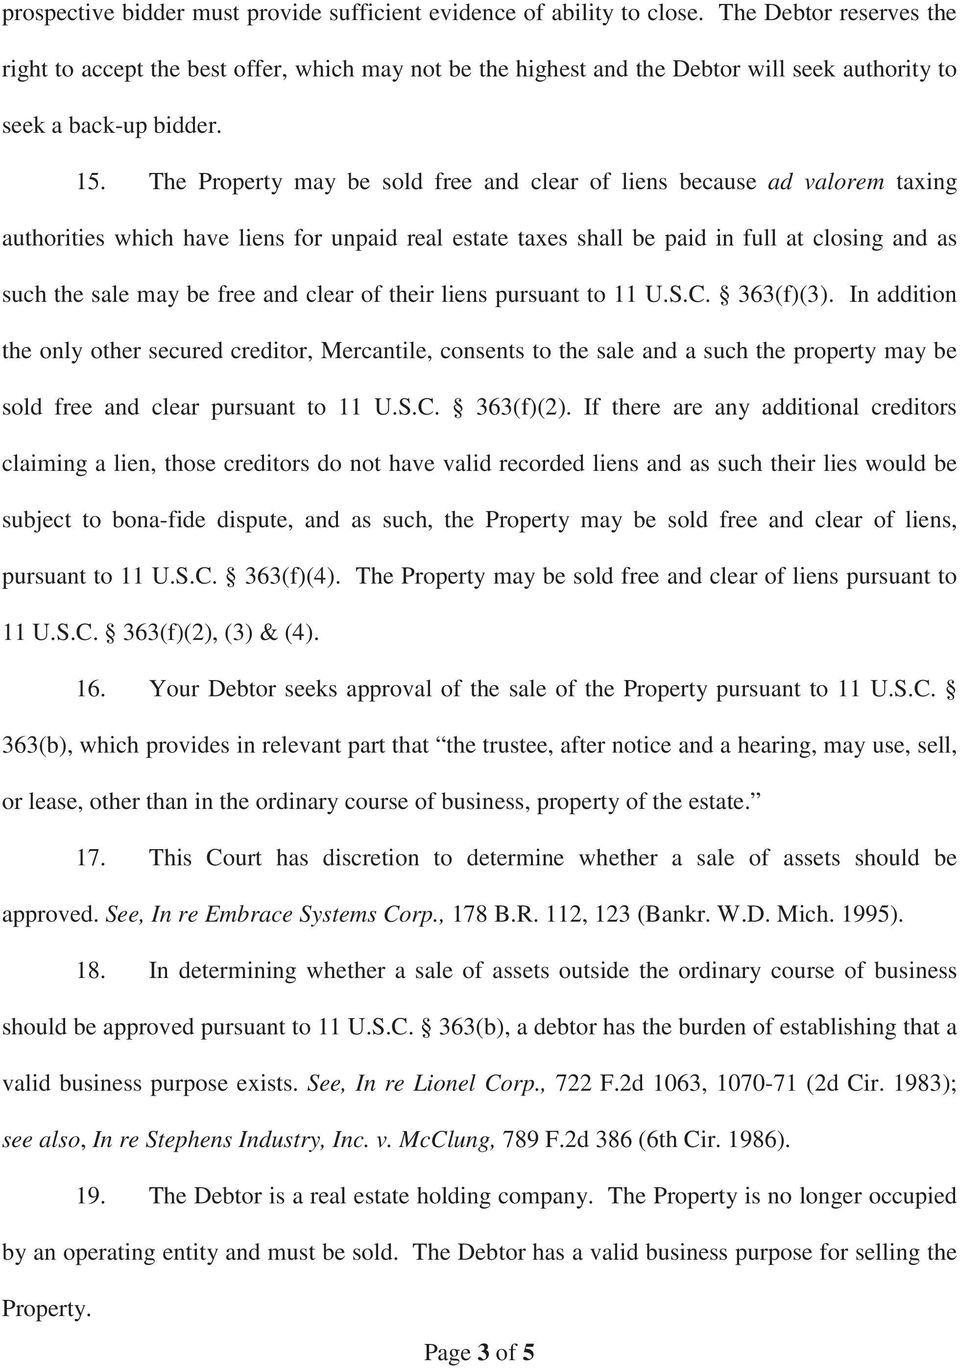 The Property may be sold free and clear of liens because ad valorem taxing authorities which have liens for unpaid real estate taxes shall be paid in full at closing and as such the sale may be free